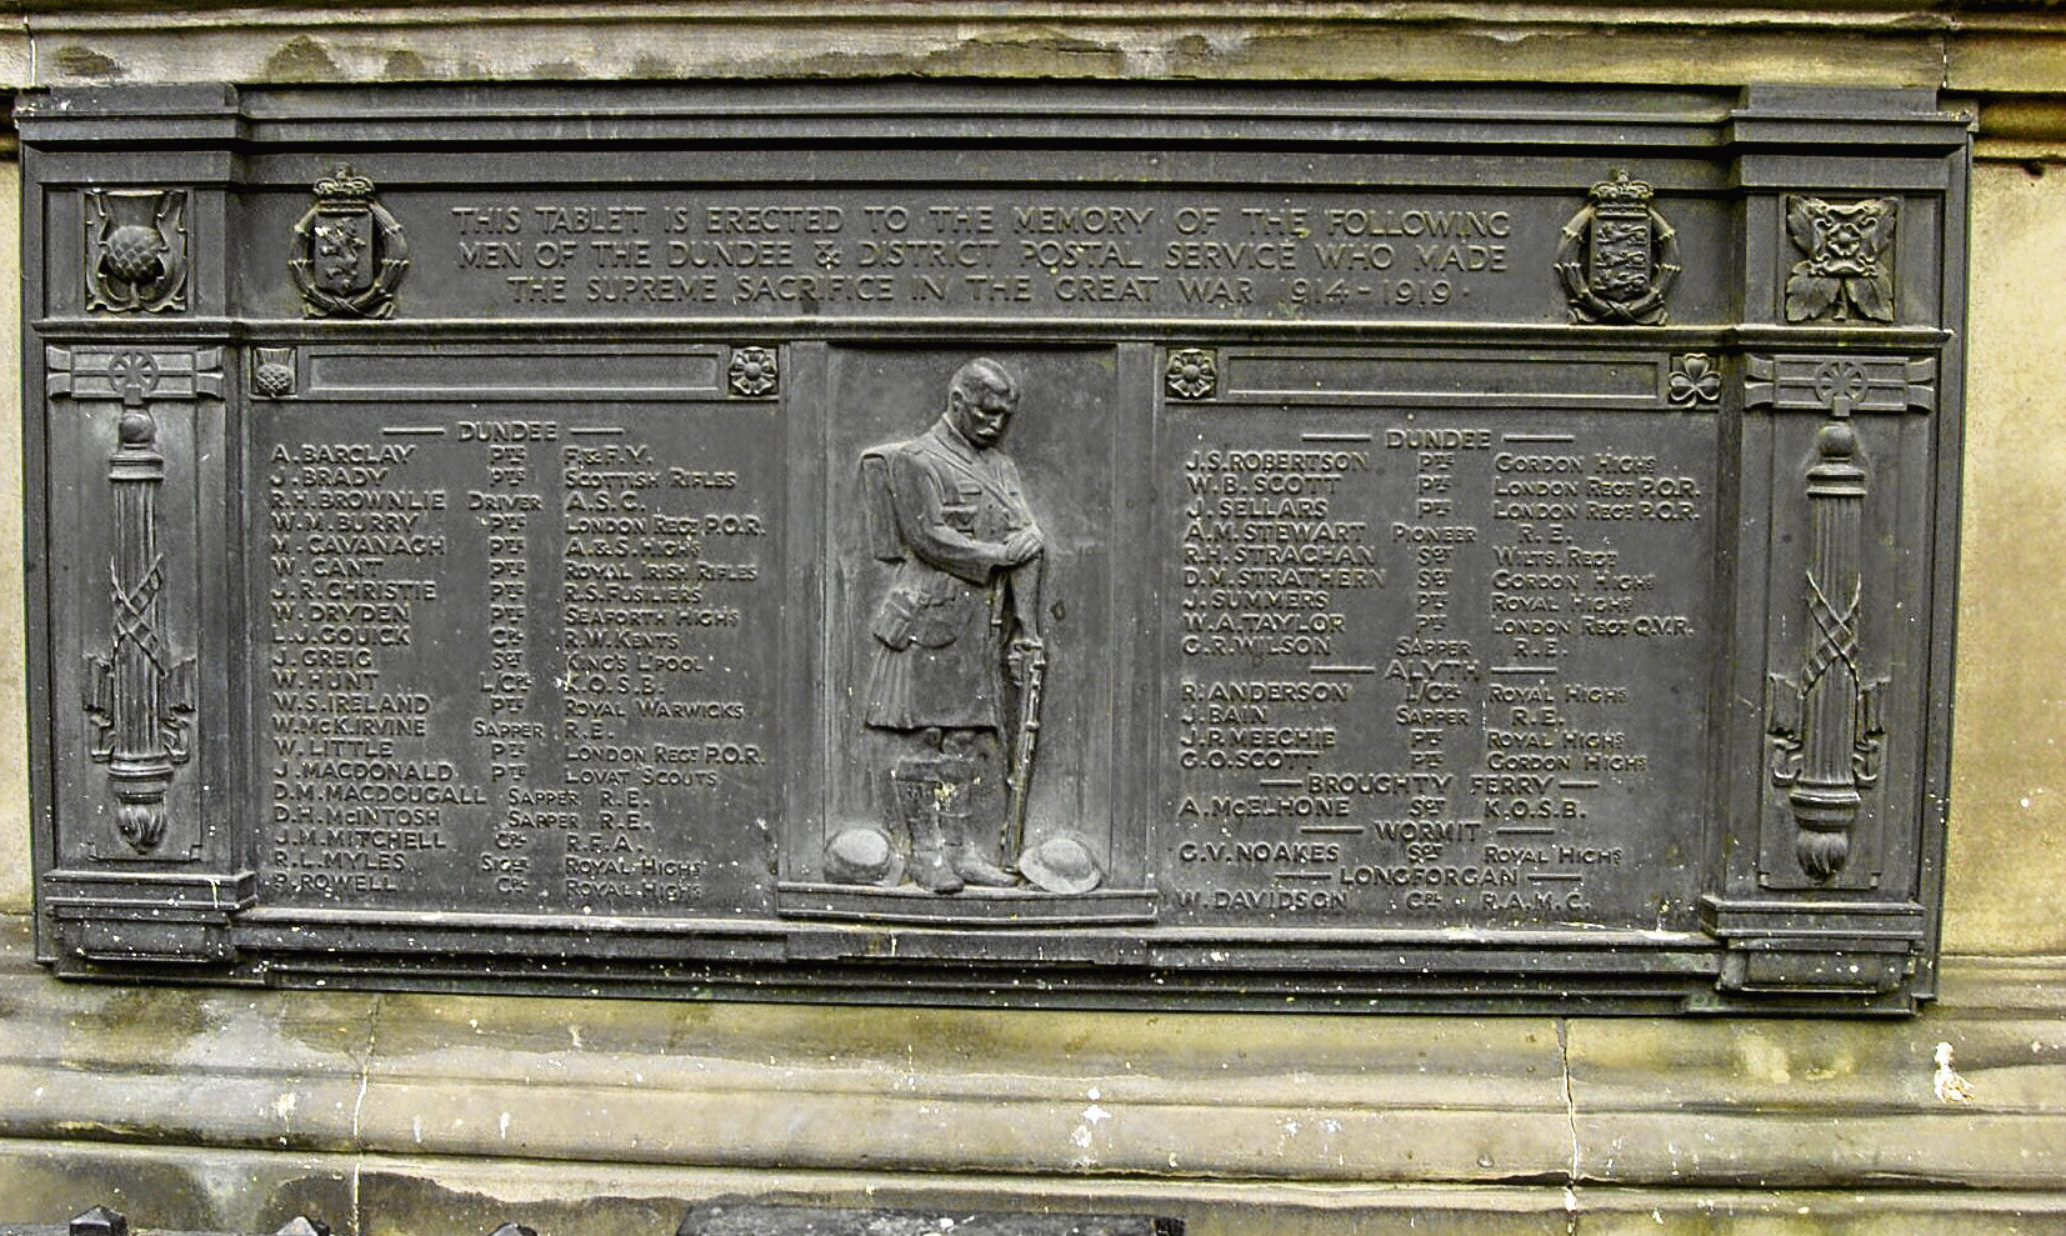 The Post Office war memorial.